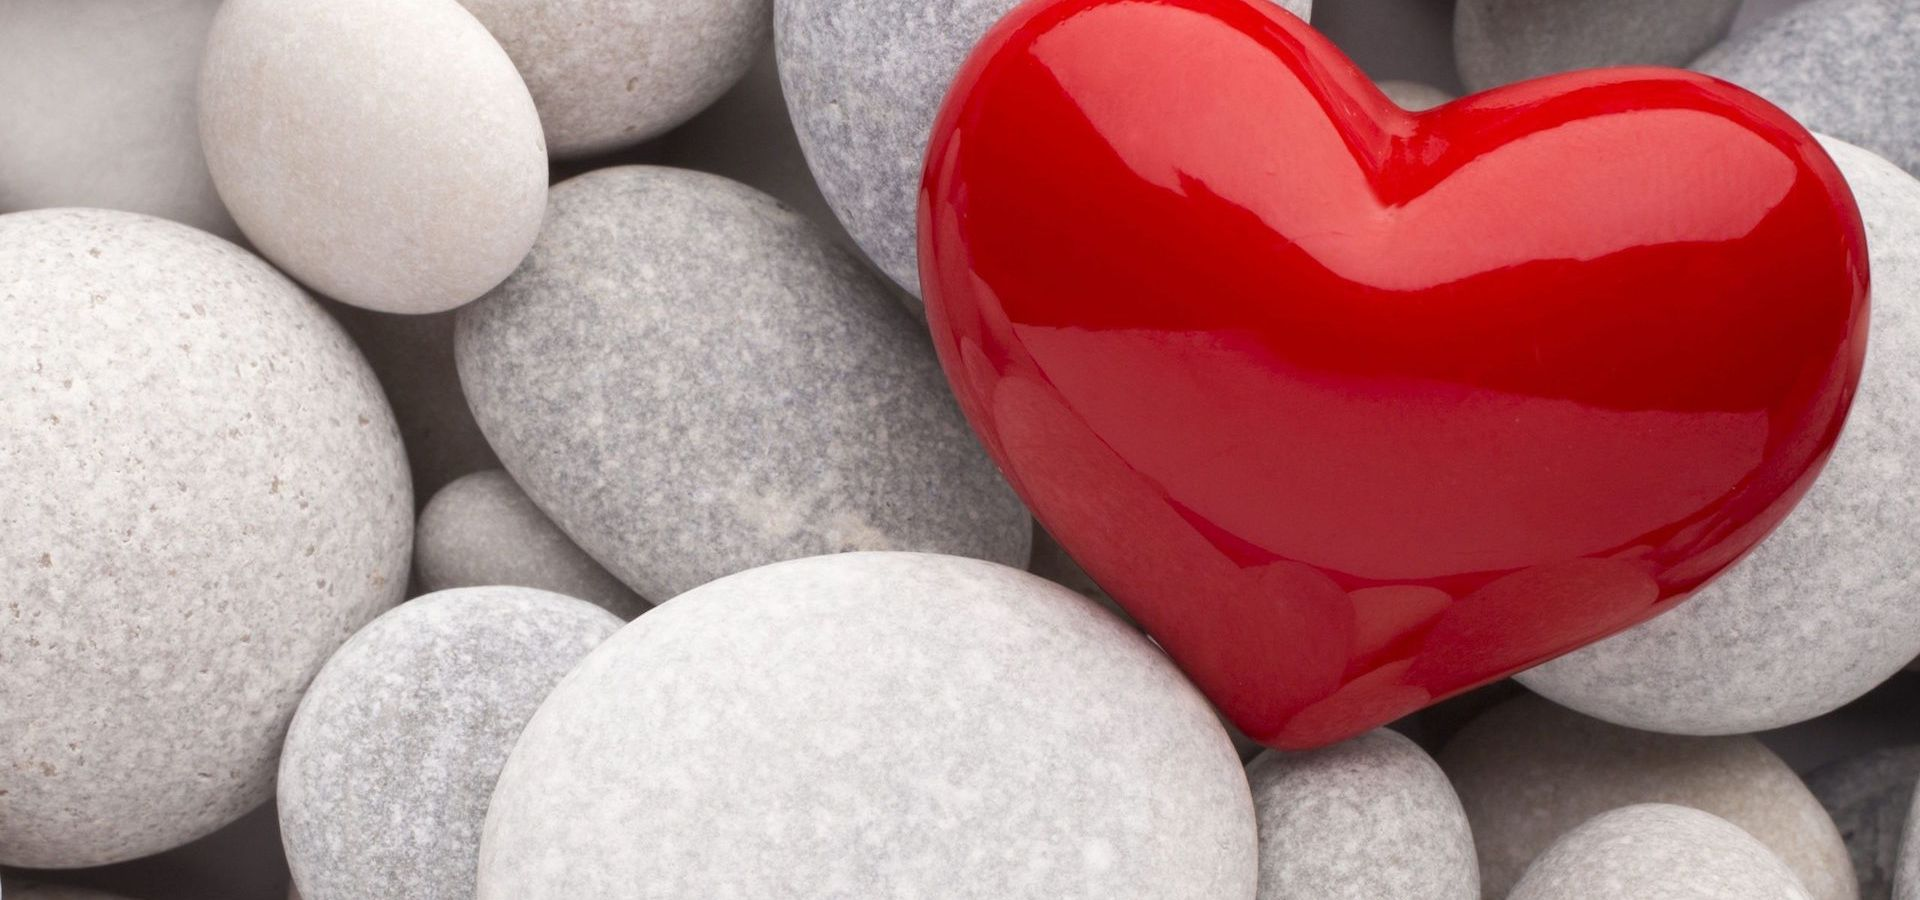 Bright, red heart among light, grey stones.